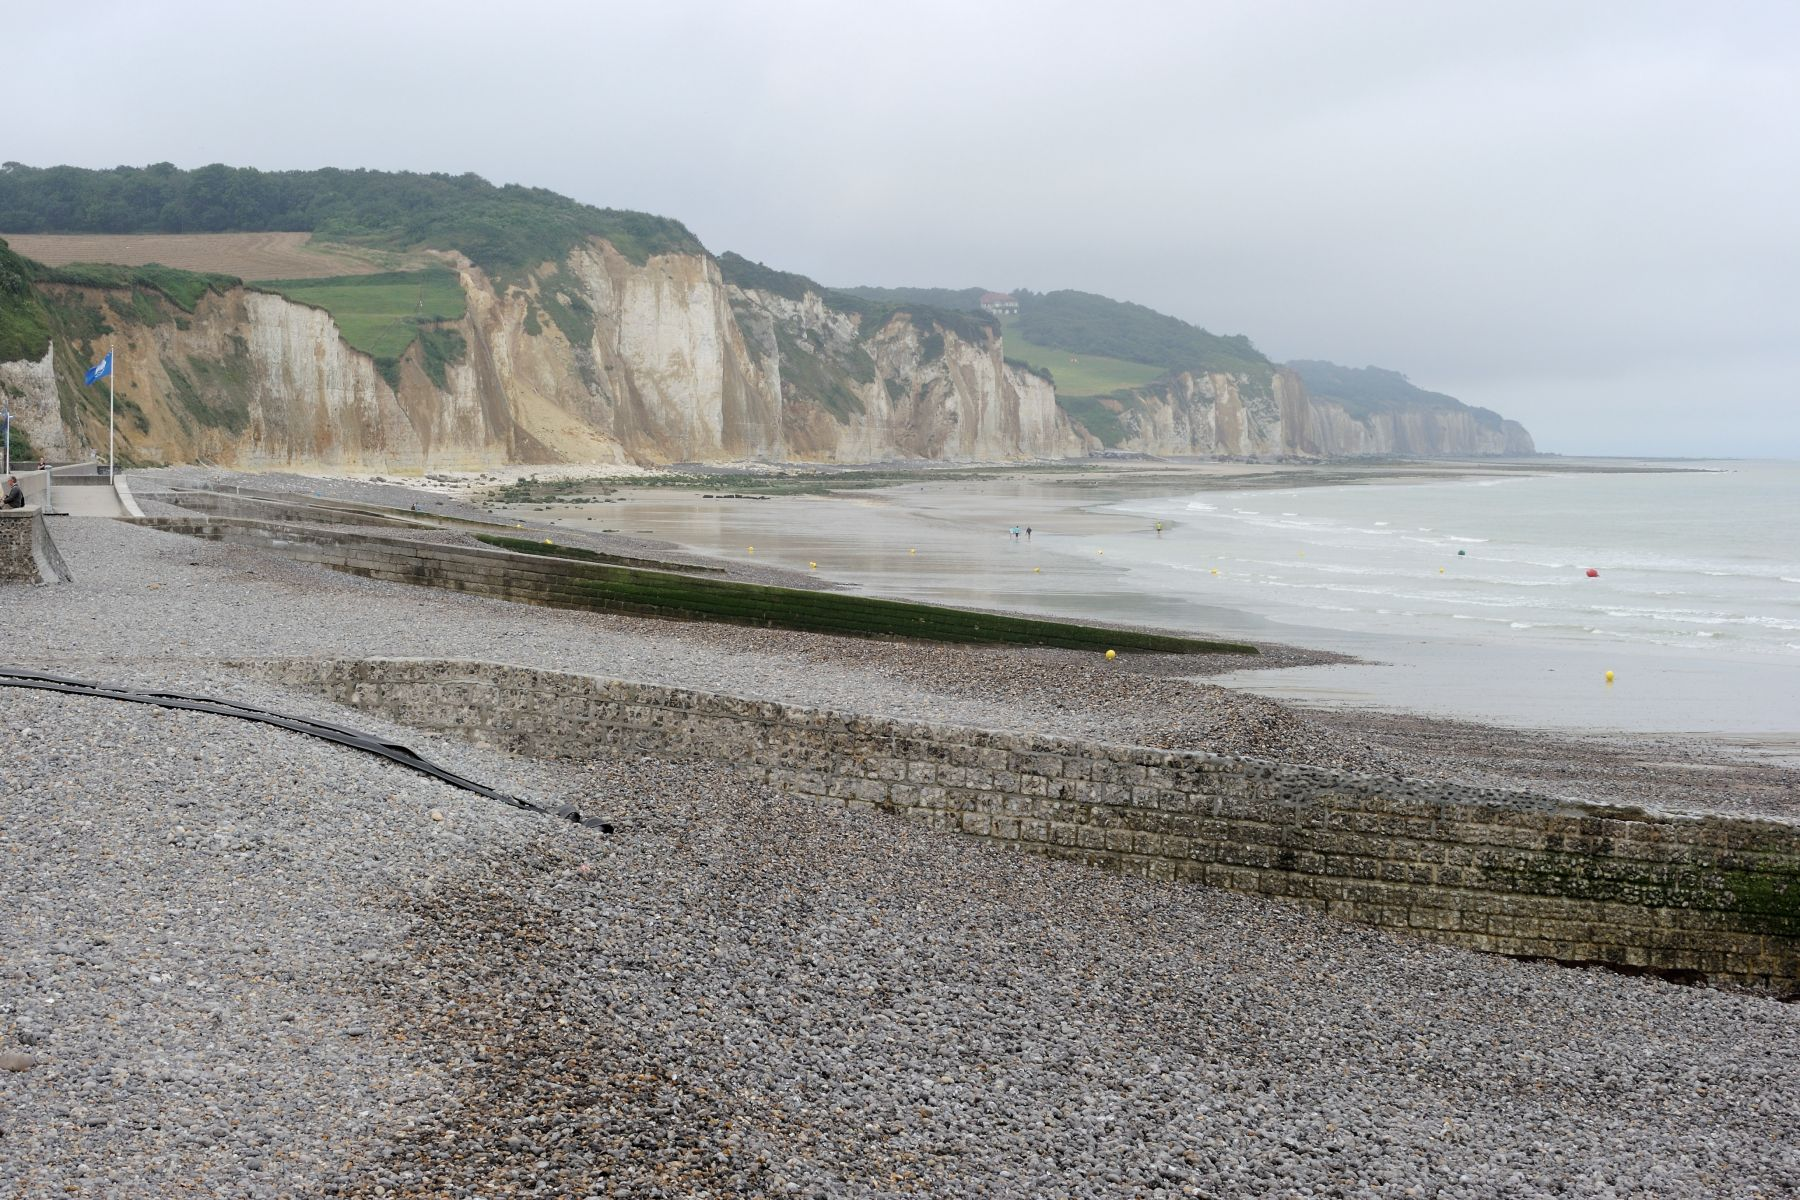 They also stopped at Pourville's Green Beach.